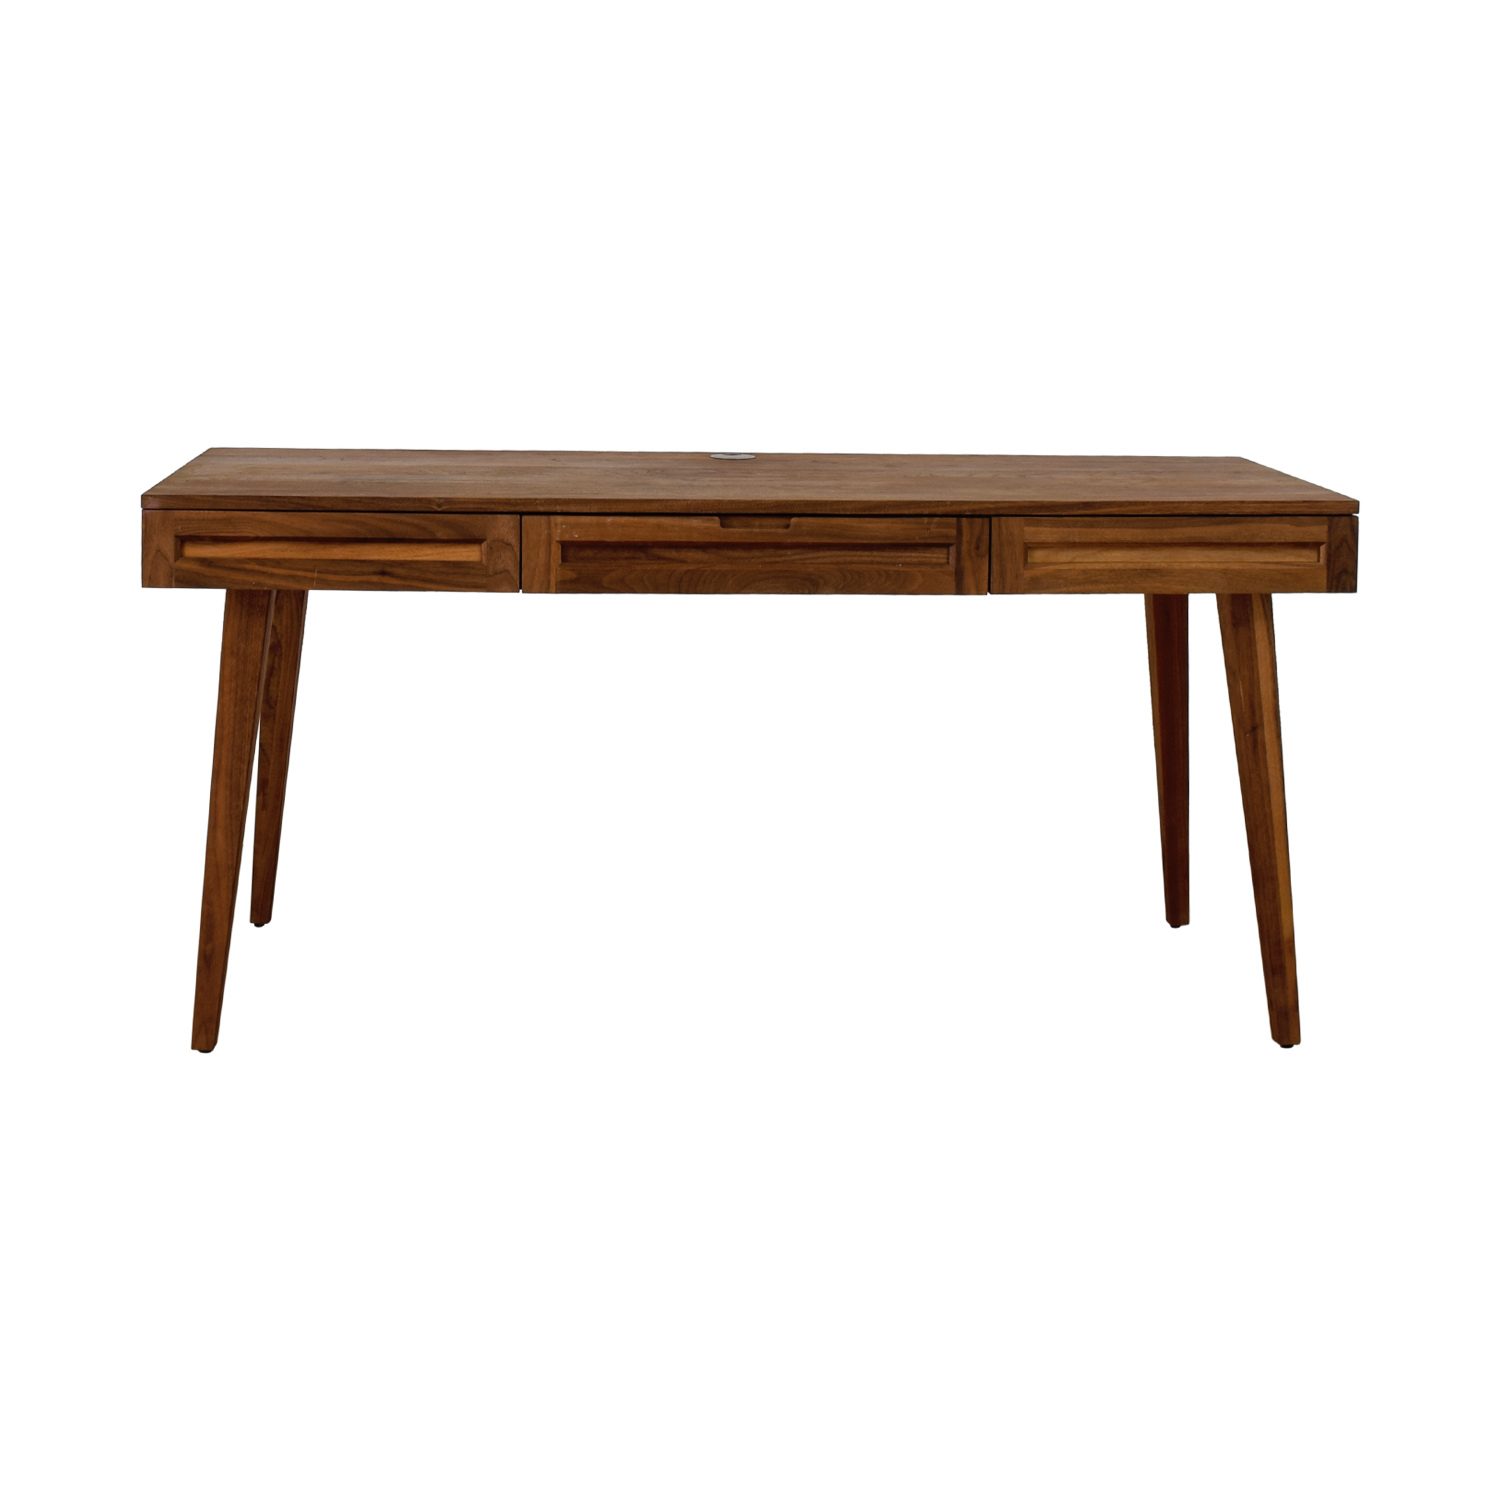 Highland Collection Highland Collection Maple Wood Desk Tables